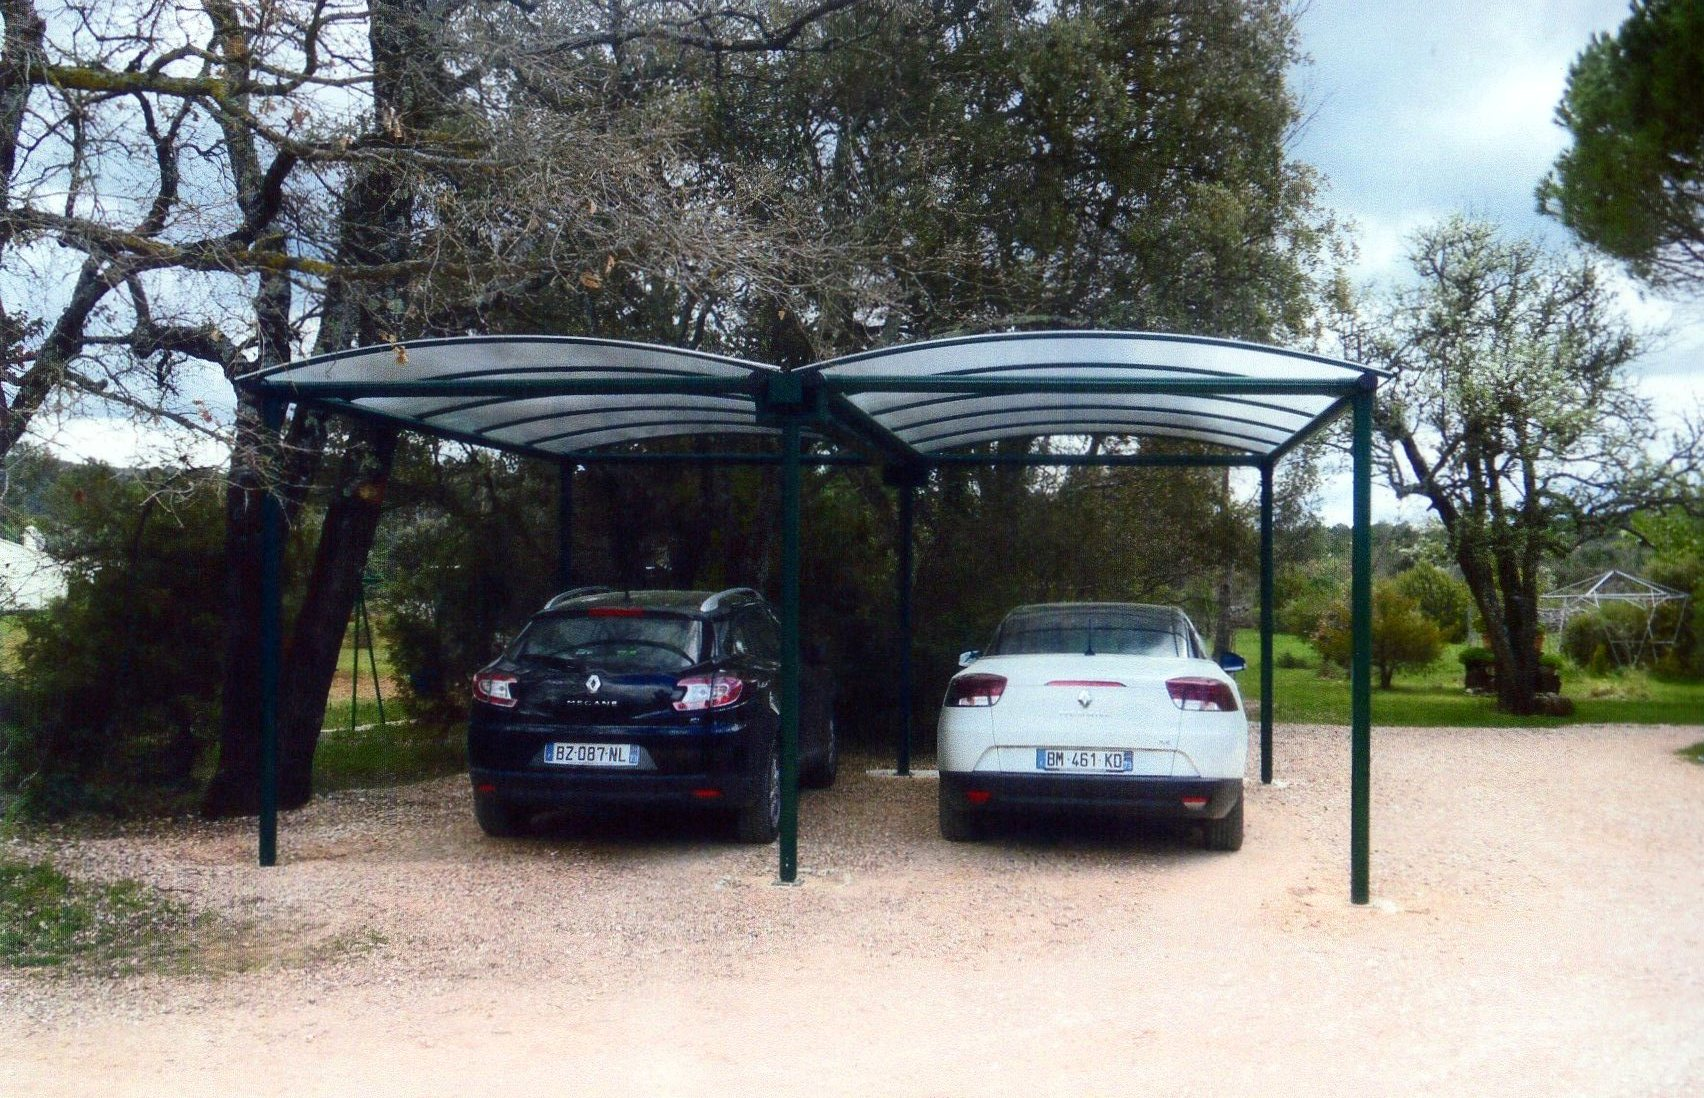 mettez votre voiture l abri avec le carport m tallique. Black Bedroom Furniture Sets. Home Design Ideas